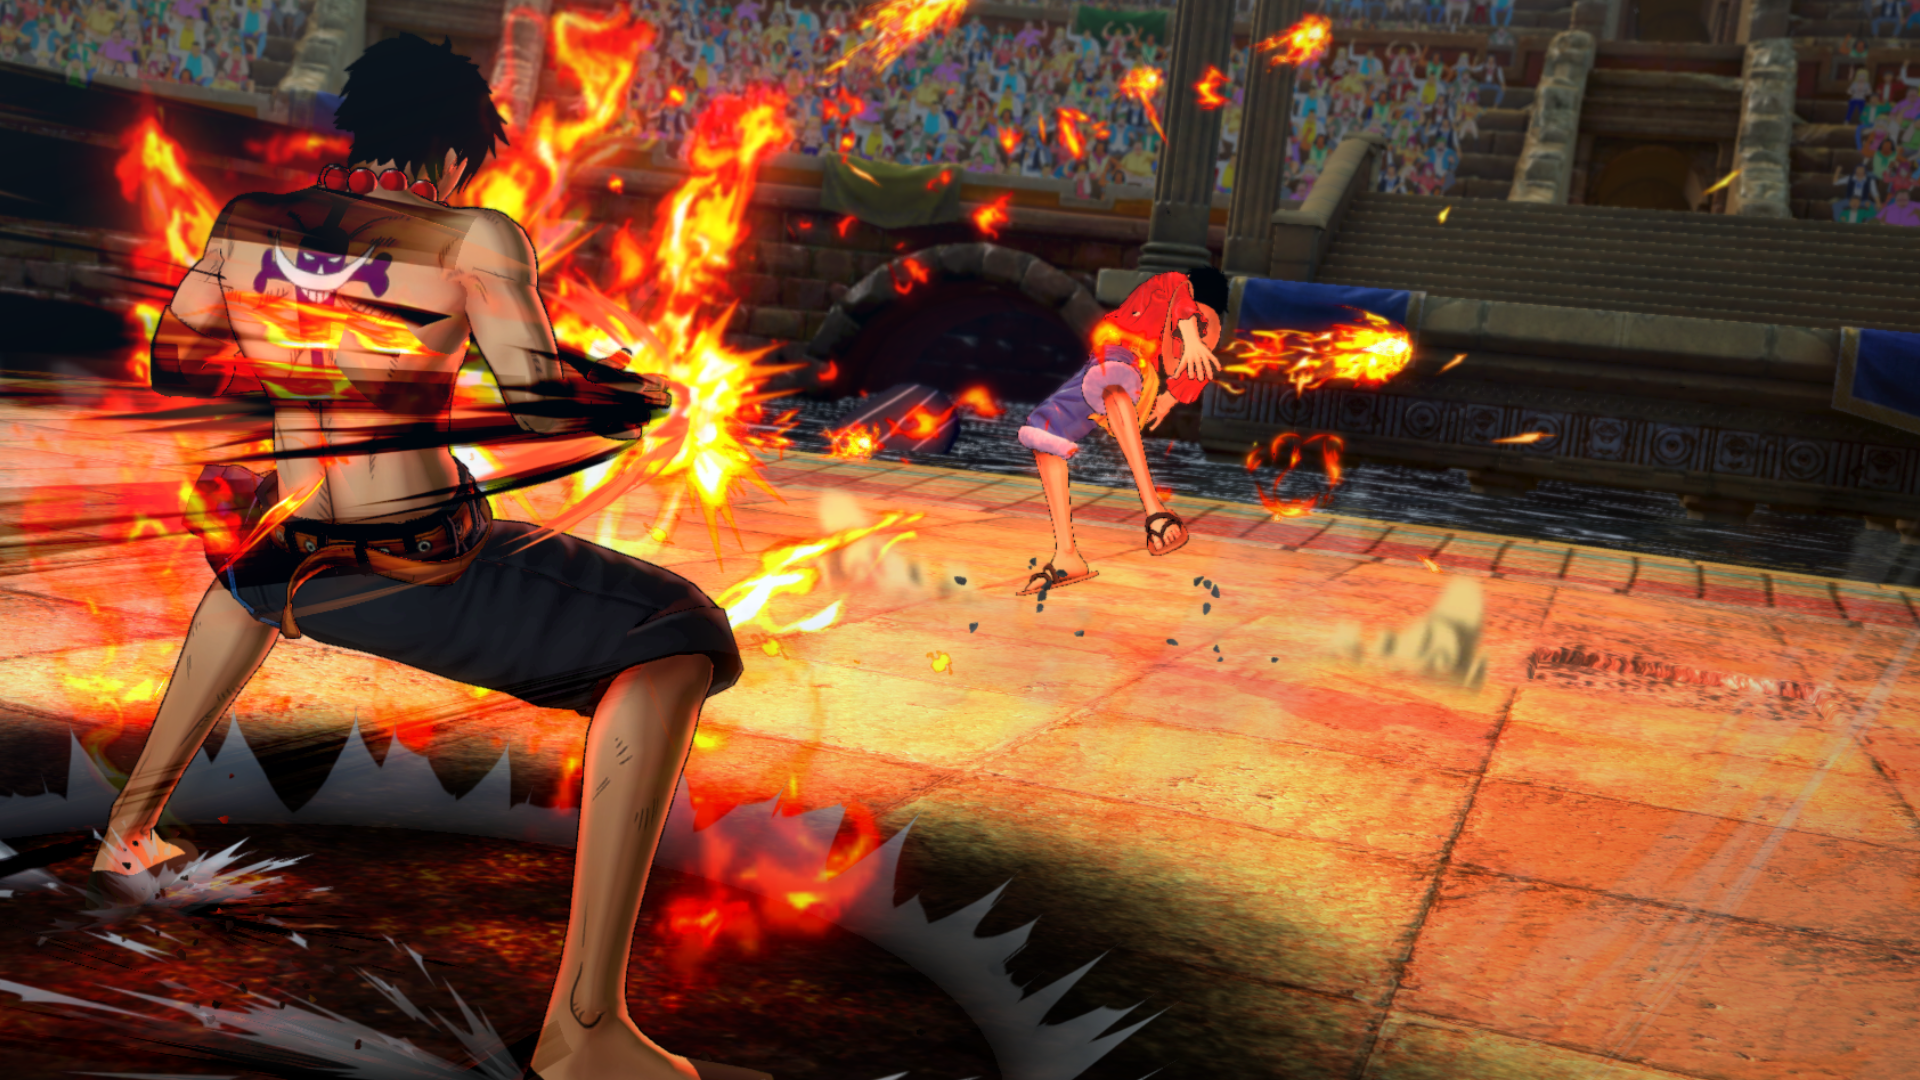 One Piece Burning Blood New Screenshots Showcase Luffy Sabo Ace Sony Ps4 Law And More